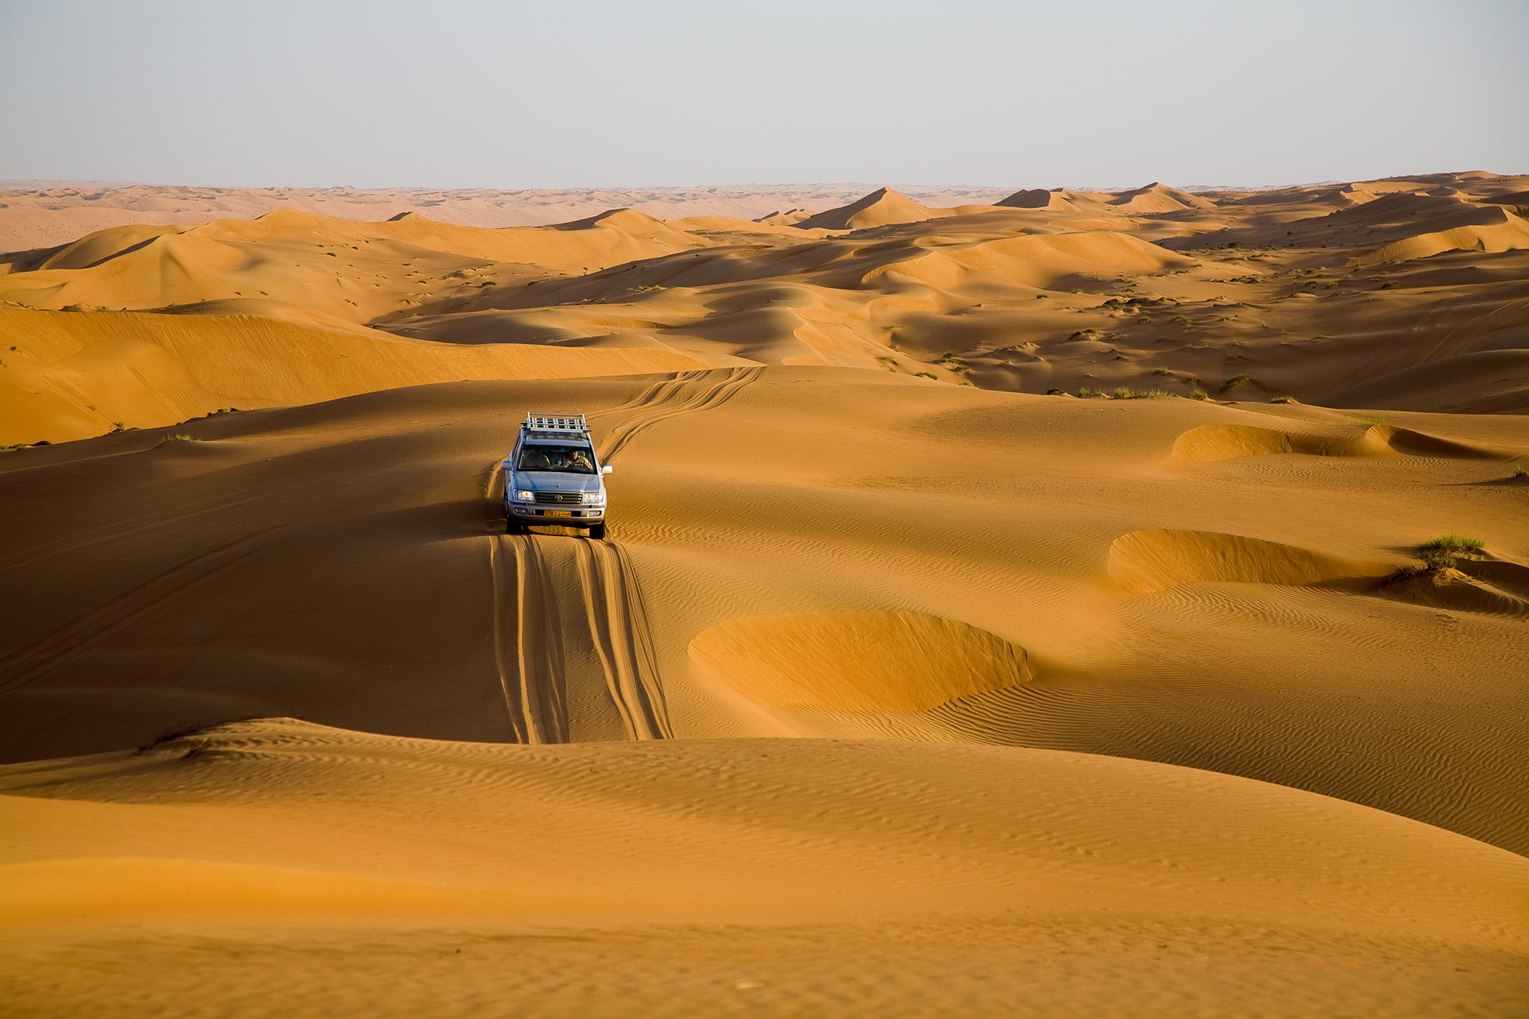 Oman facts, interesting things in Oman, Oman travel facts, iEagle travel